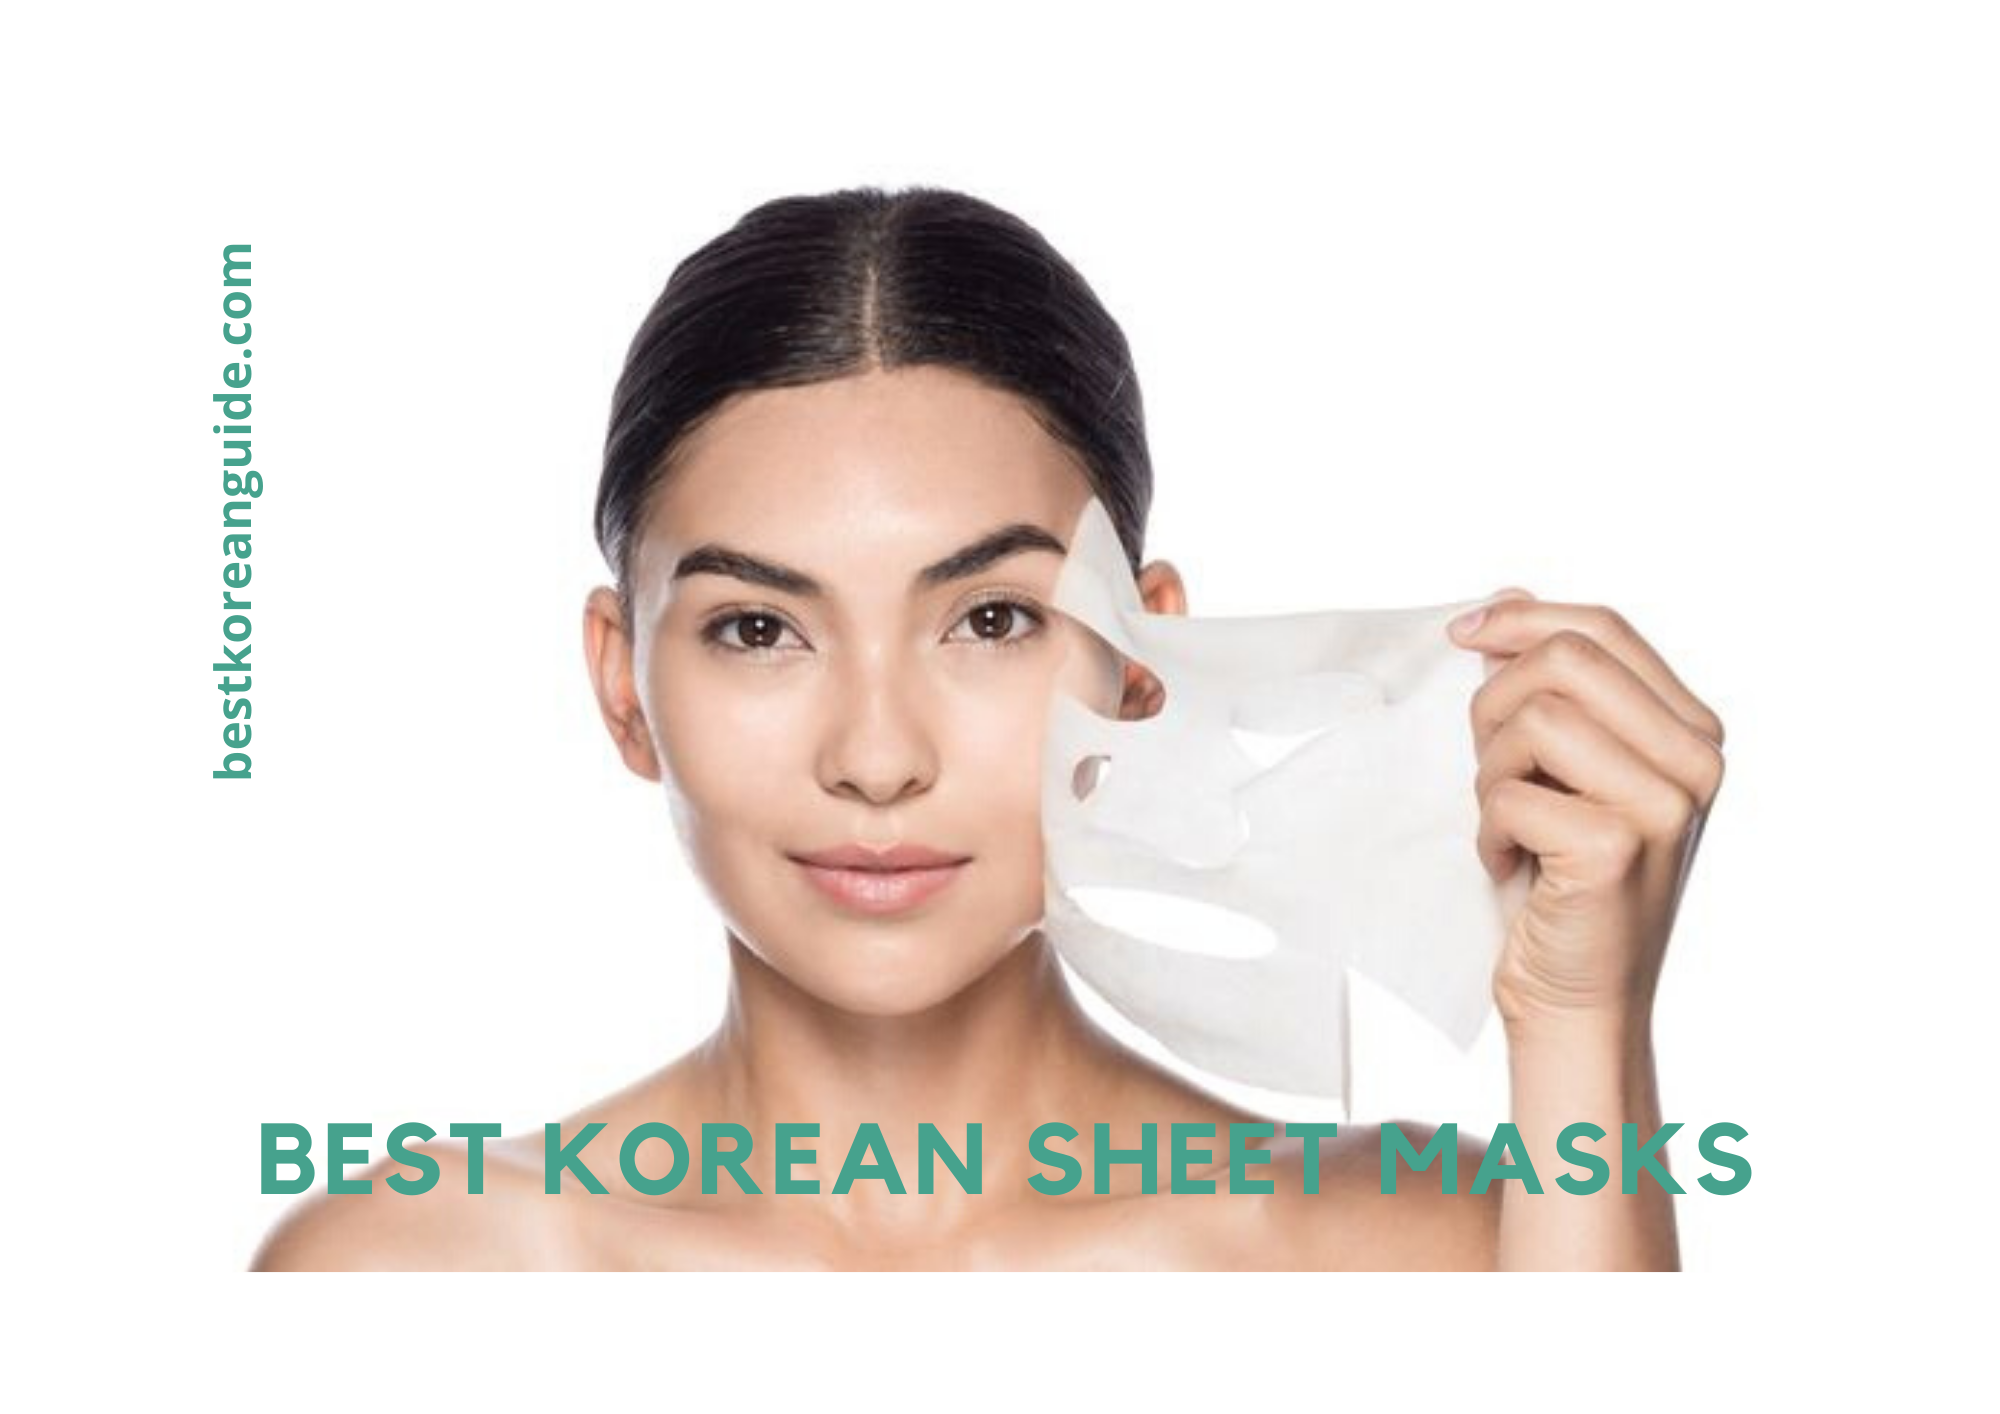 Best Korean Sheet Masks in 2020